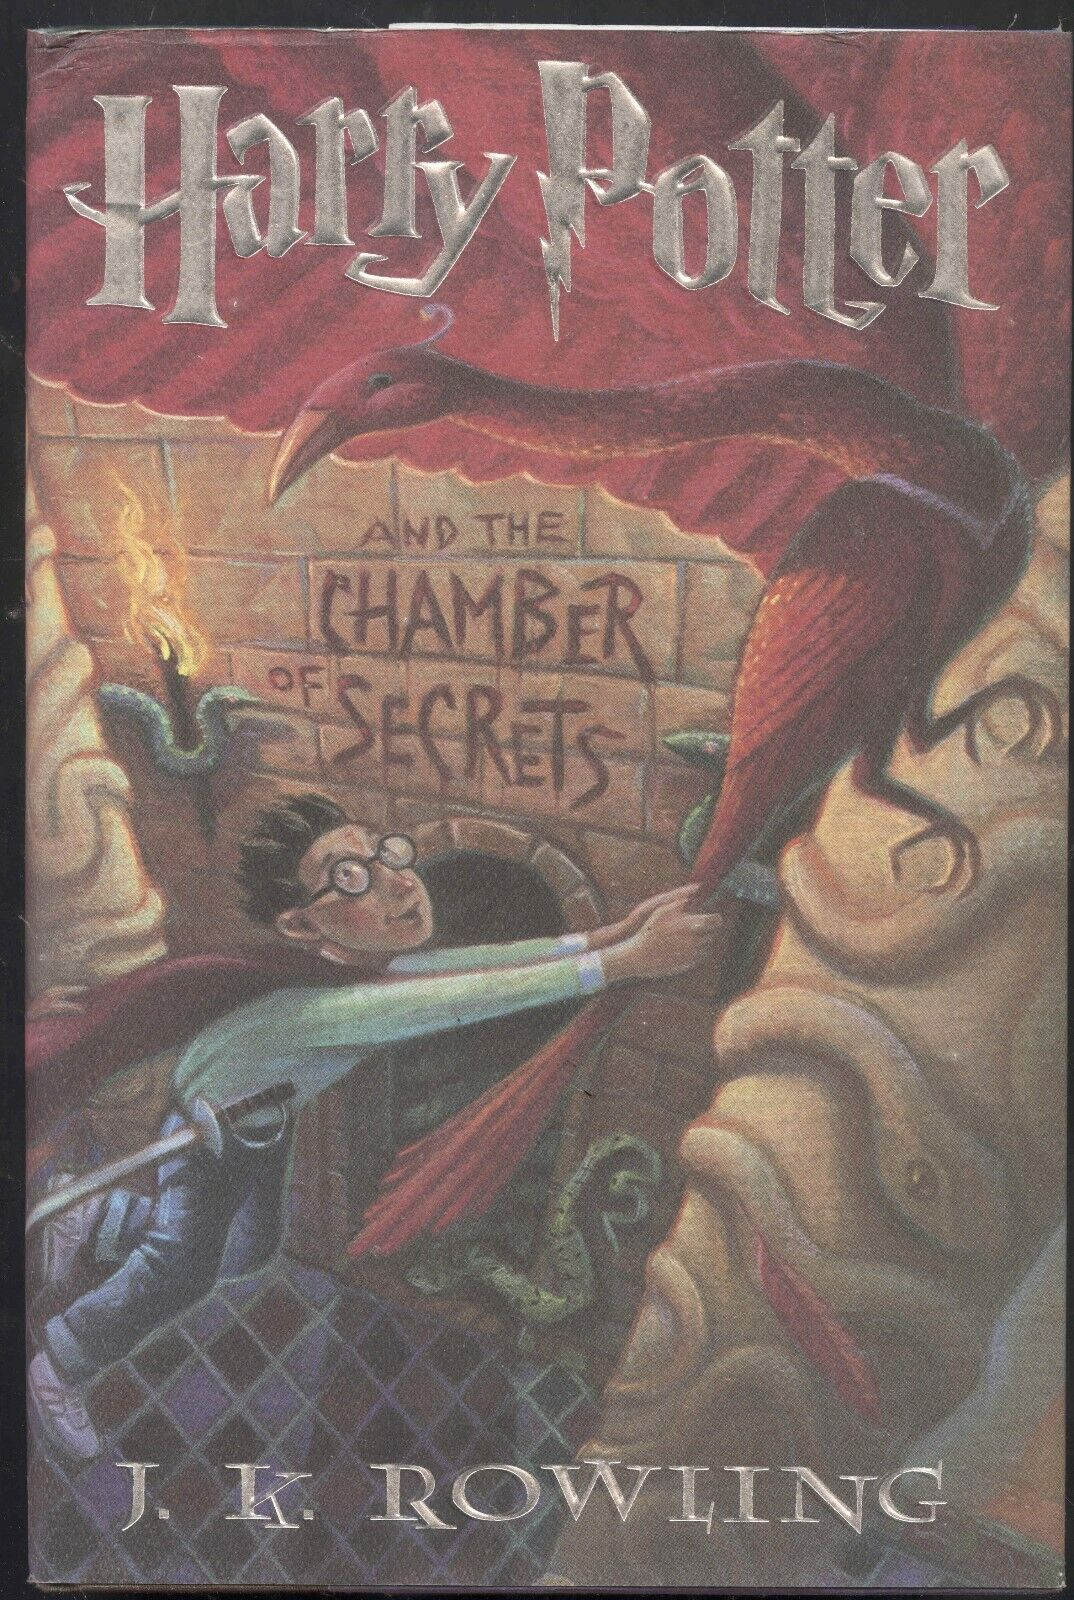 Harry Potter and the Chamber of Secrets by J.K. Rowling 1999, Hardcover with DJ